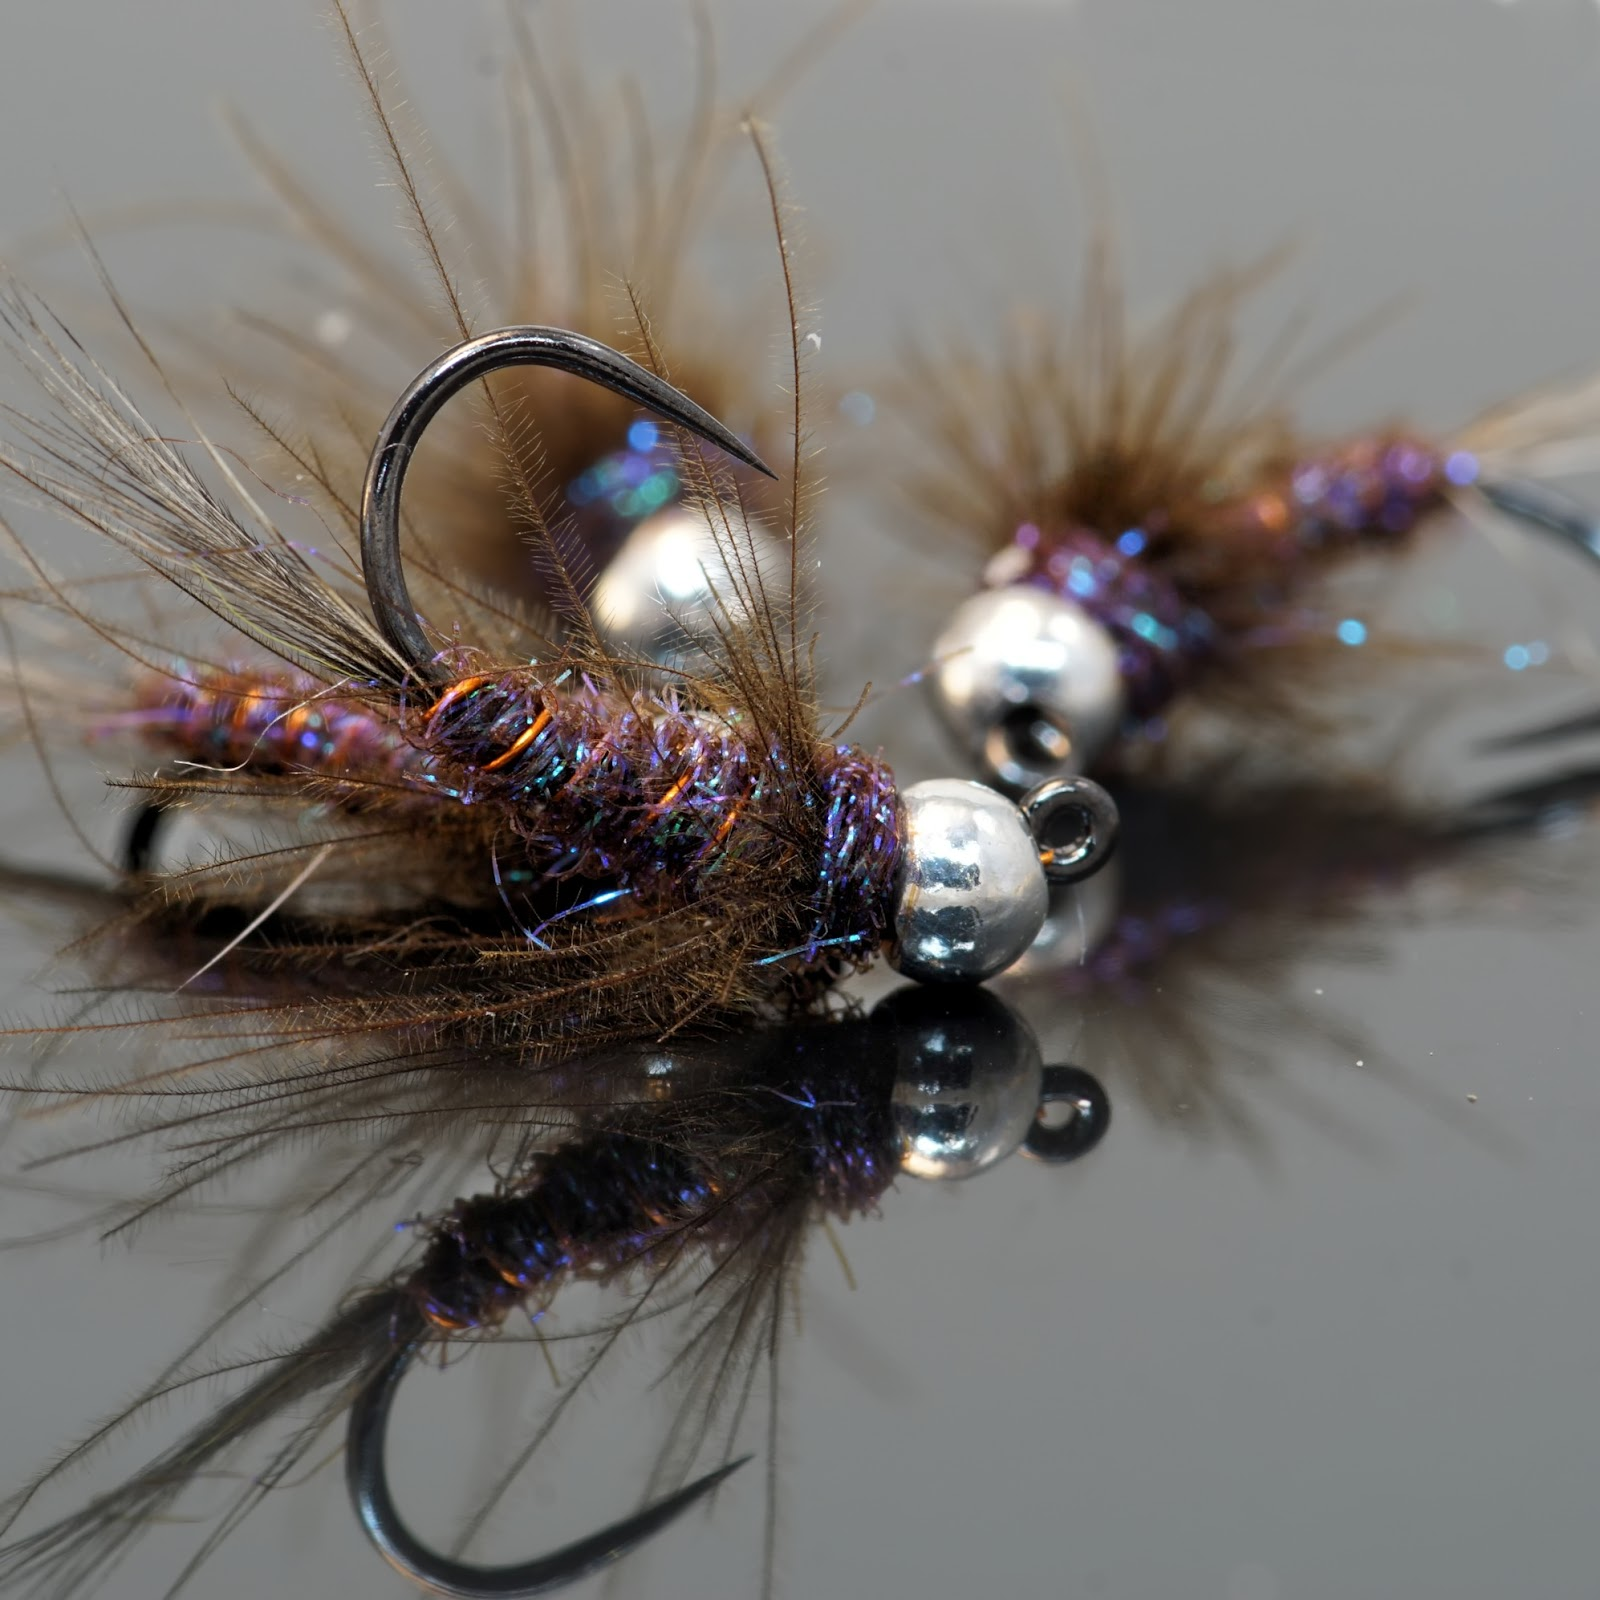 Duracell jig fly fish food fly tying and fly fishing for Fly fishing tying